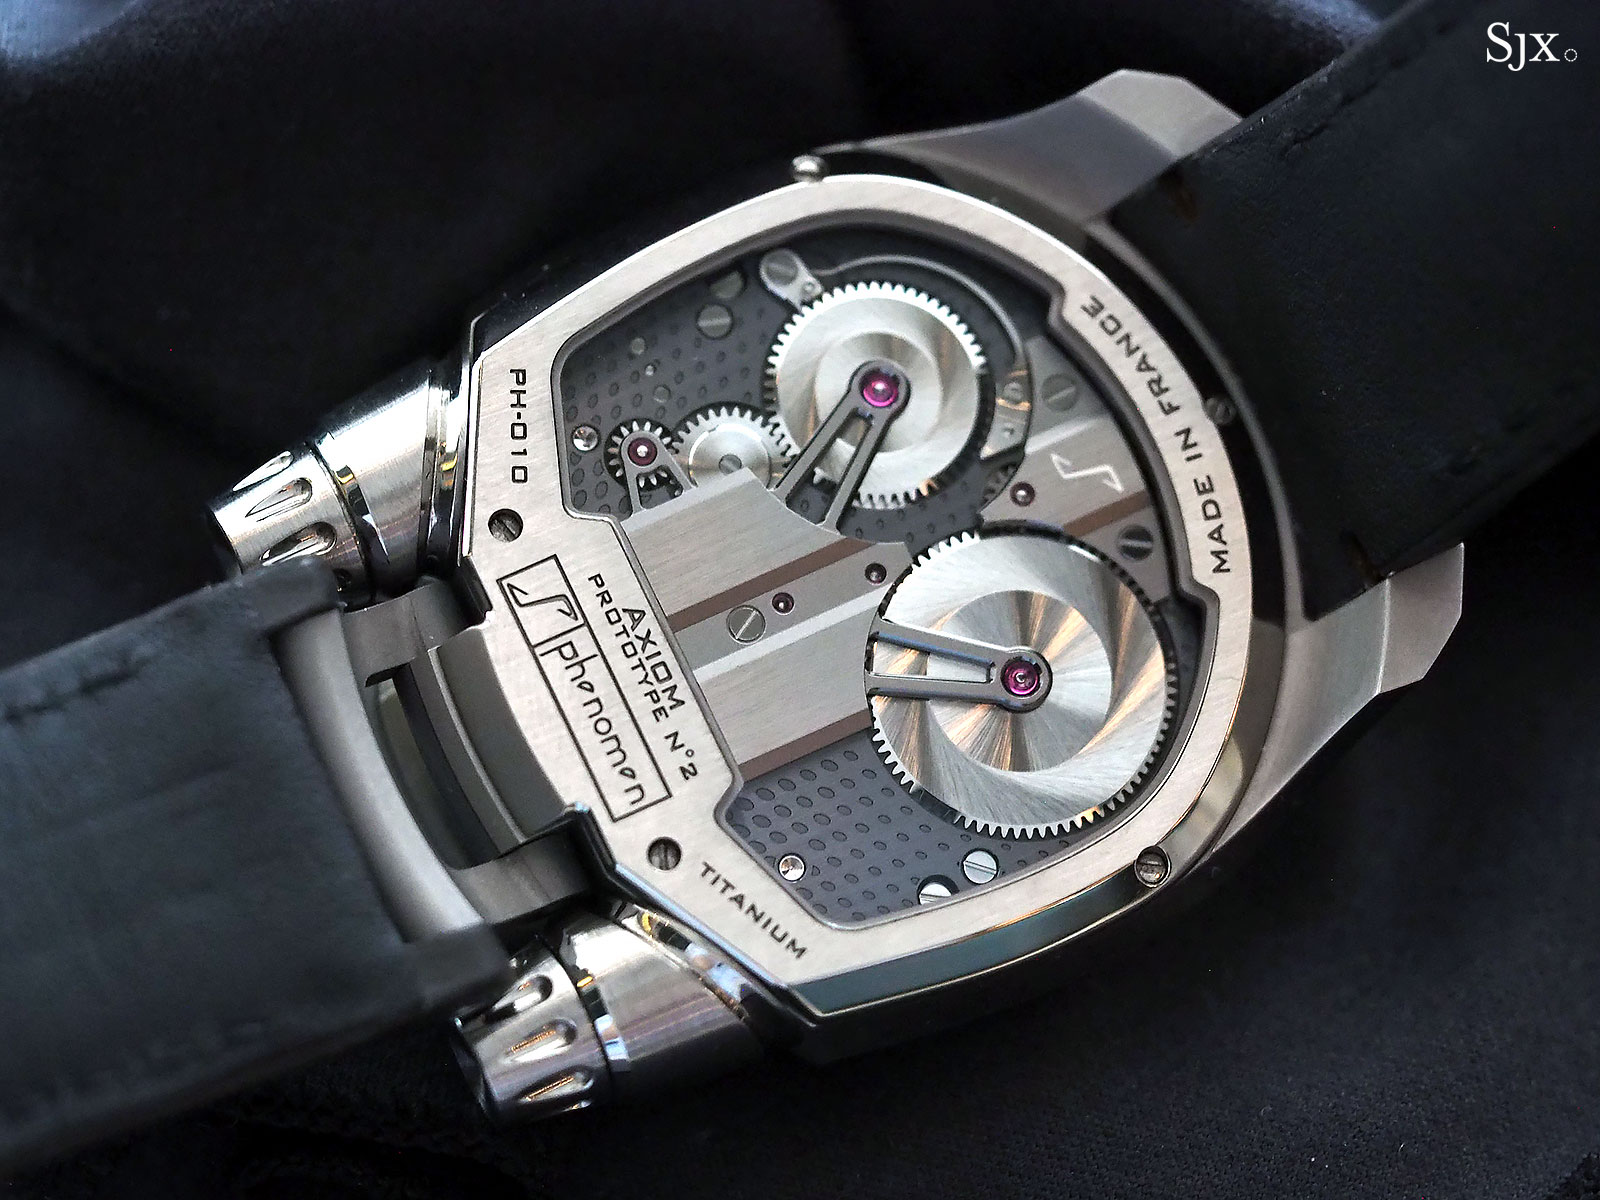 Phenomen Axiom watch titanium 7